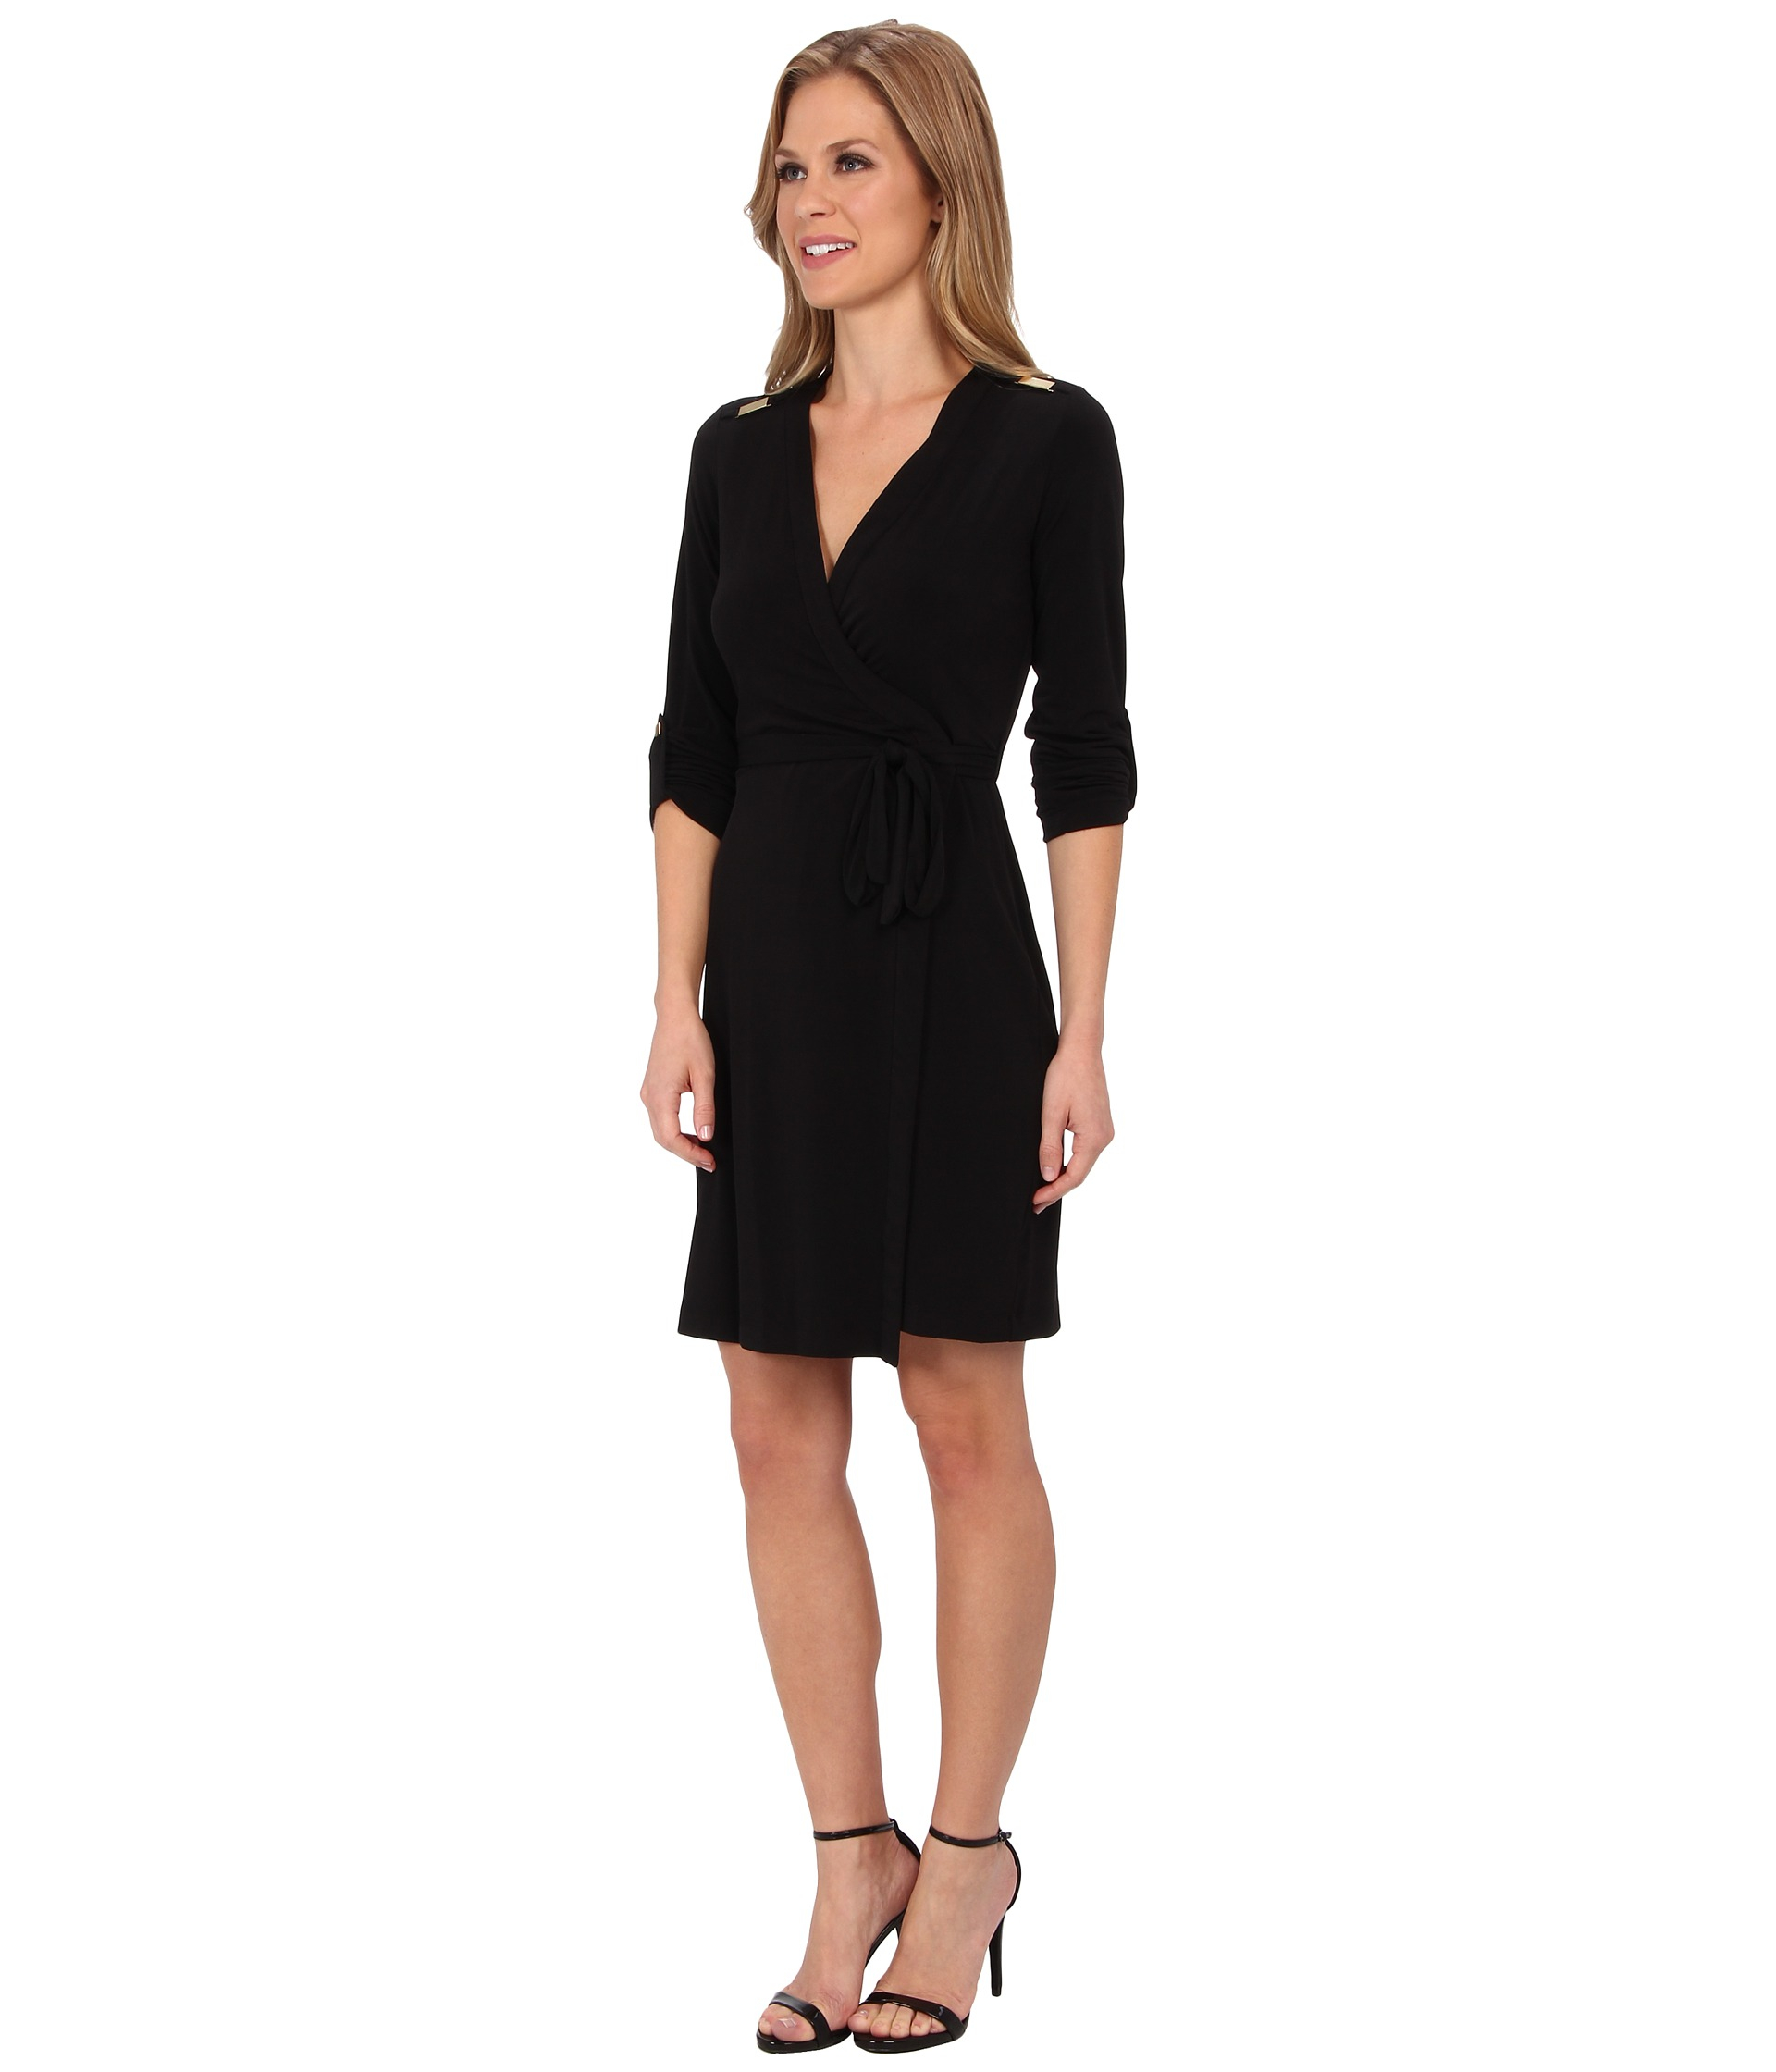 Calvin Klein Synthetic Petite Belted Sheath Dress In Black